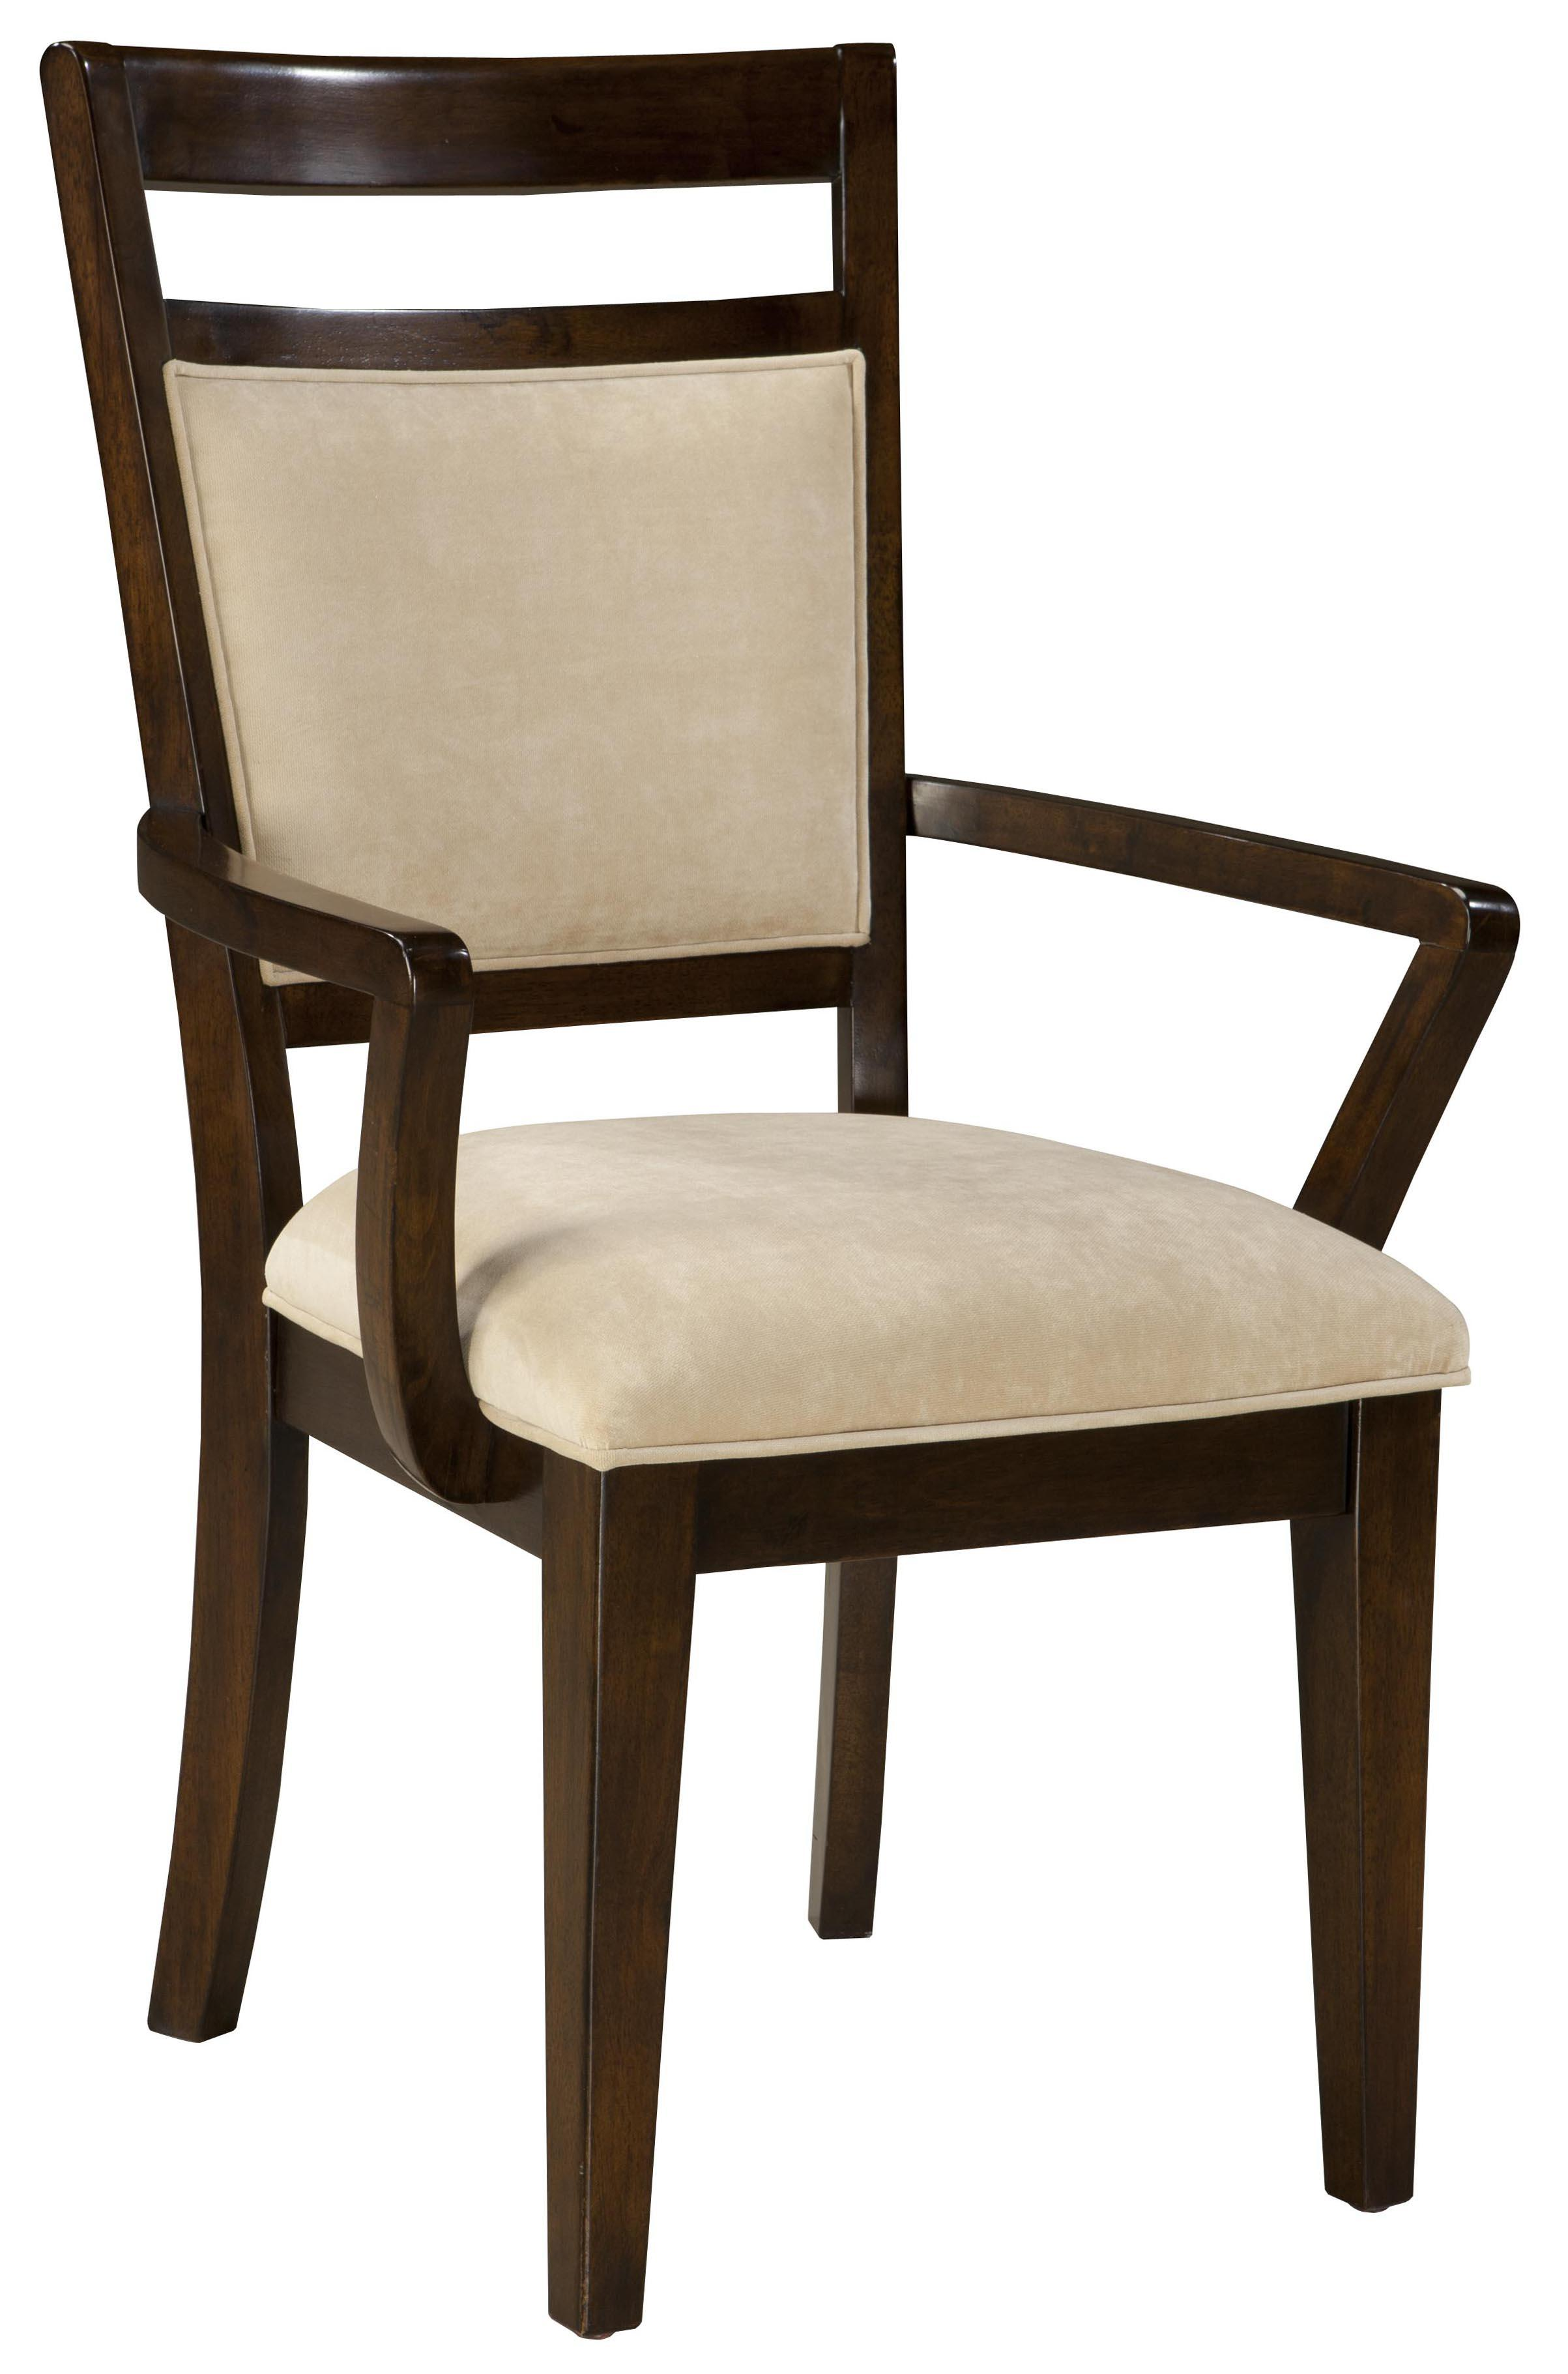 chair standards most comfortable computer chairs standard furniture avion arm with upholstered seat